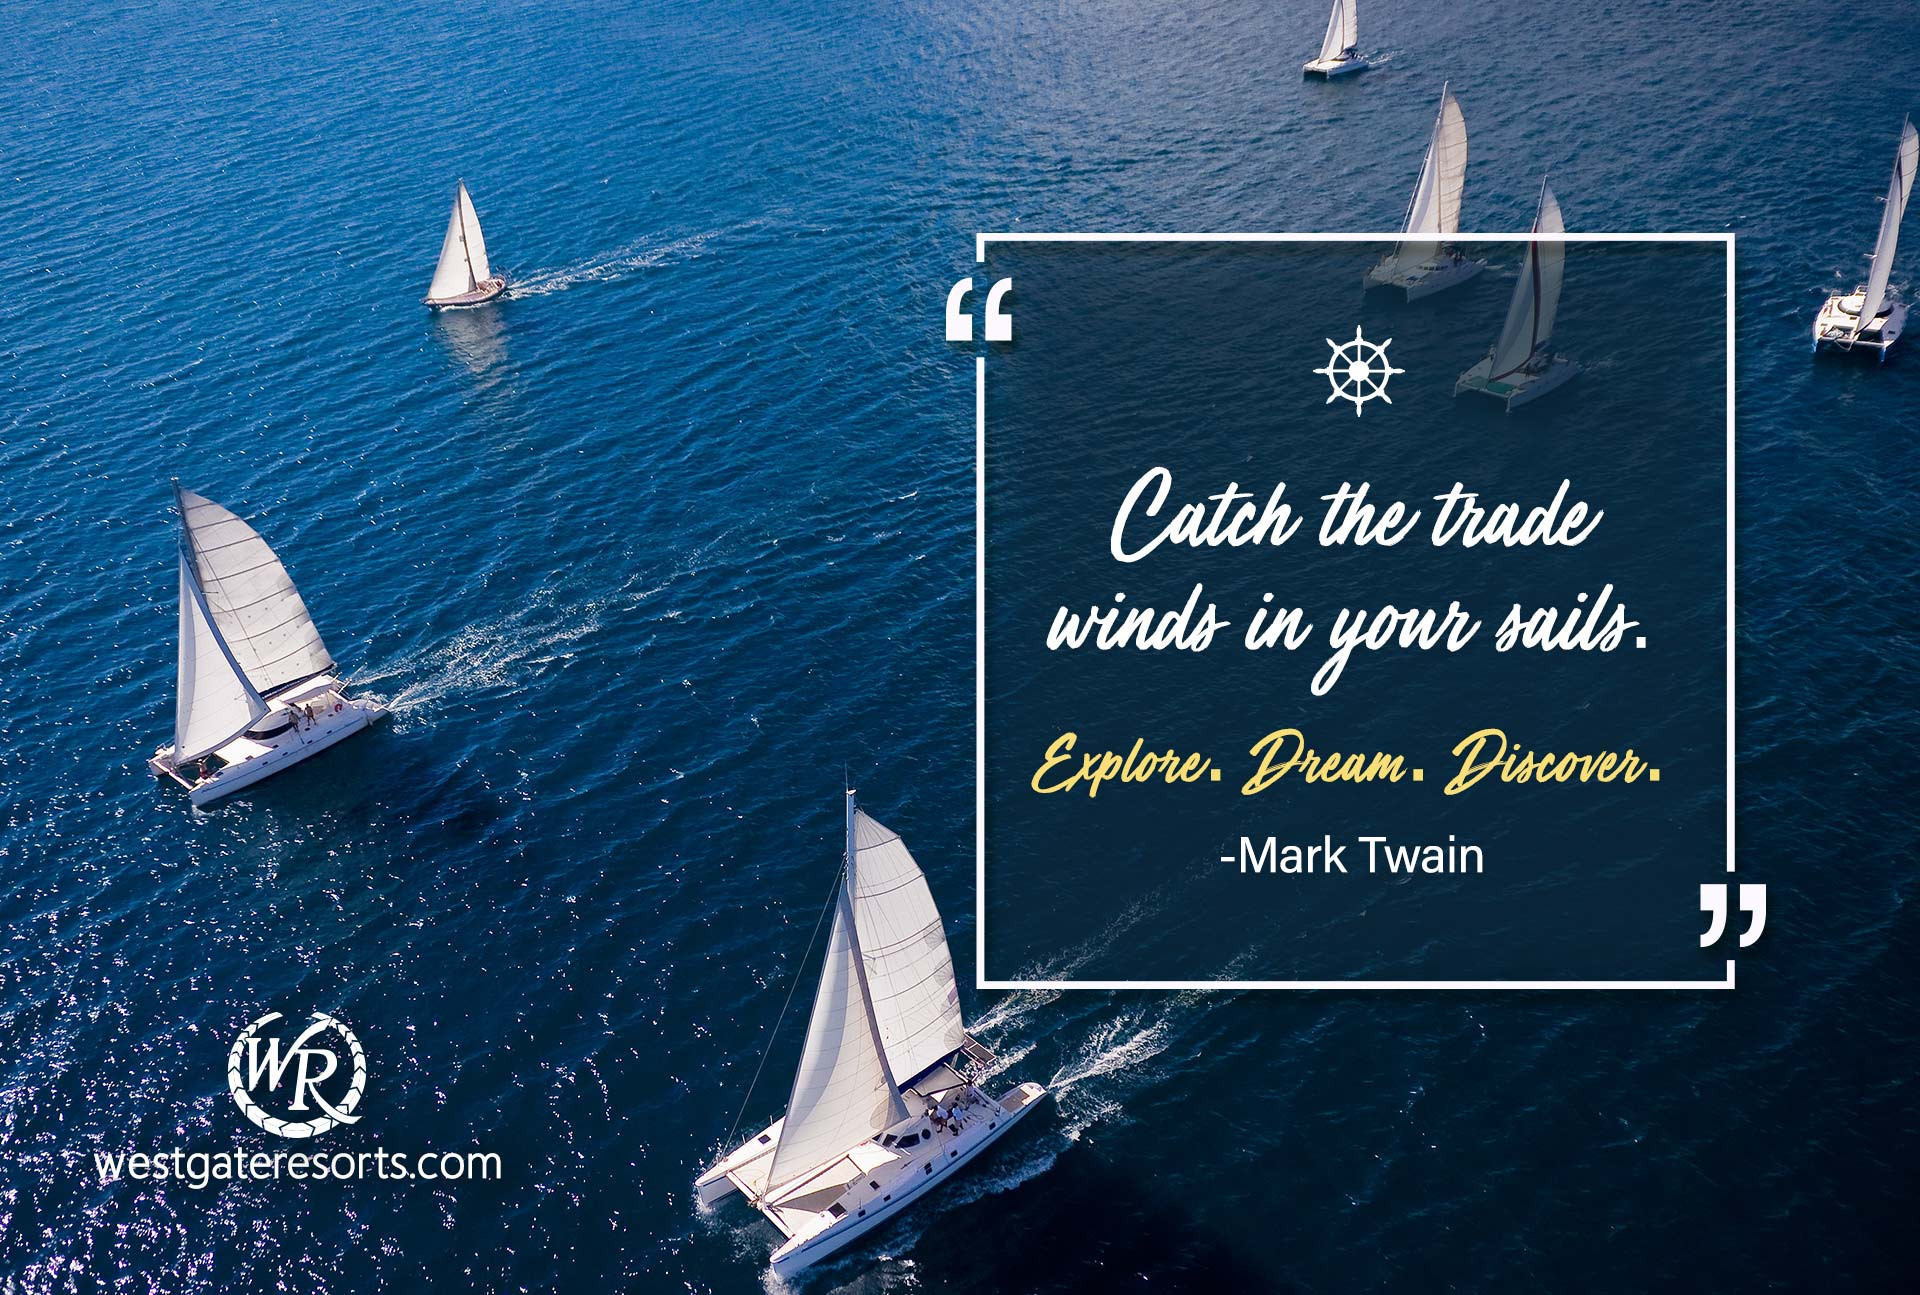 Catch the trade winds in your sails. Explore. Dream. Discover | Travel Motivational Quotes